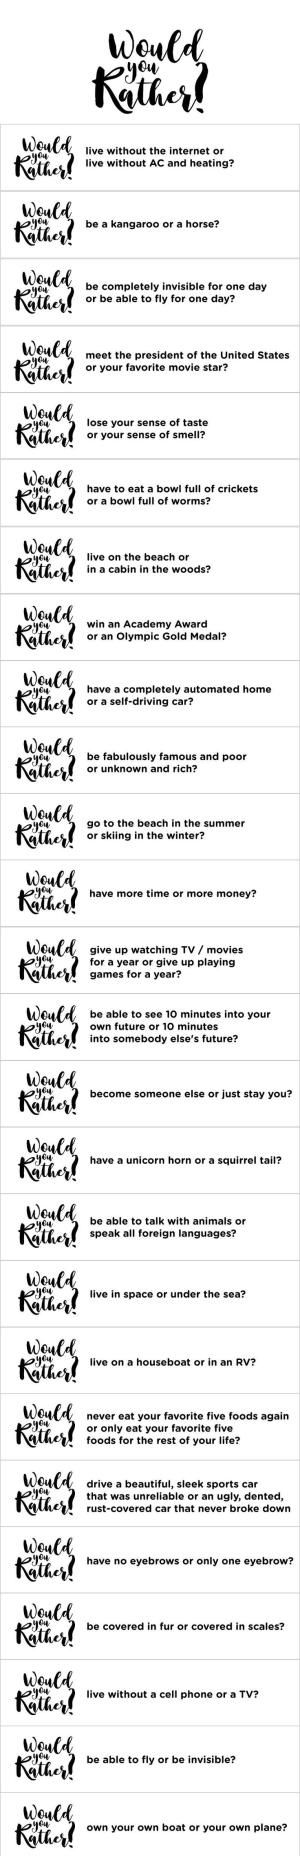 phone would you rather questions by nina